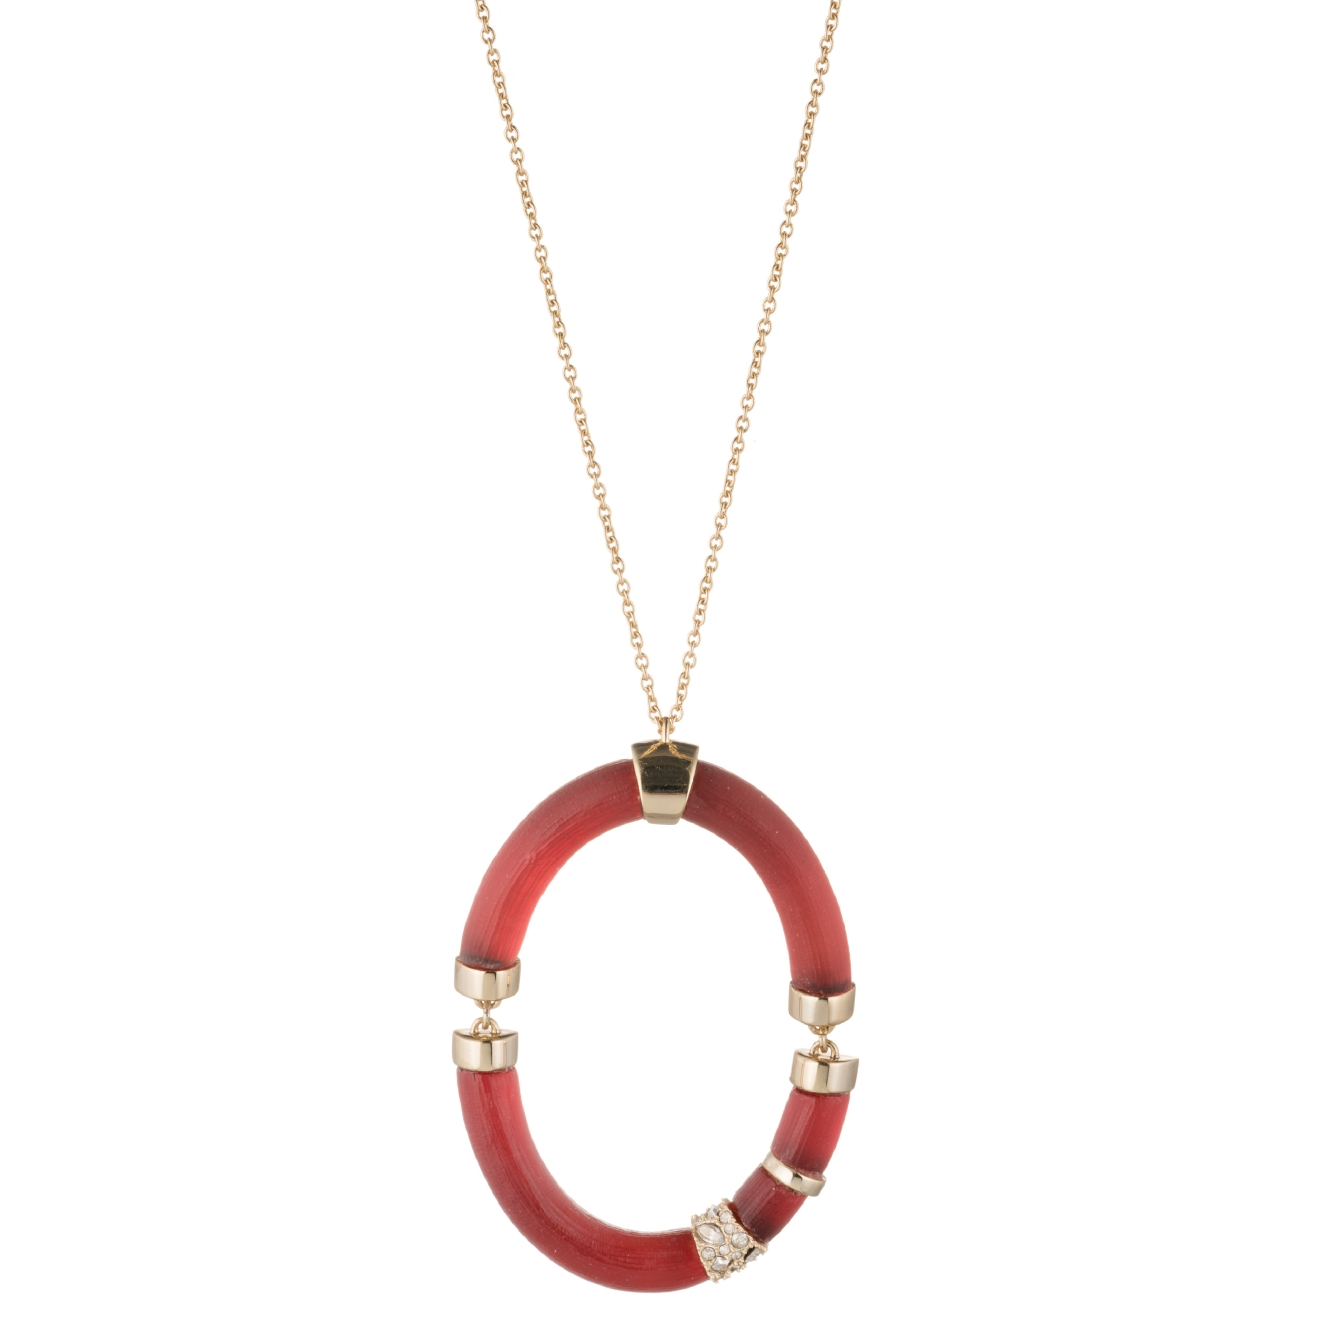 Long necklaces are an easy way to add a little pizazz to any ensemble. Alexis Bittar Colorblock Long Oval Pendant, $225, alexisbittar.com (Image: Courtesy Alexis Bittar)